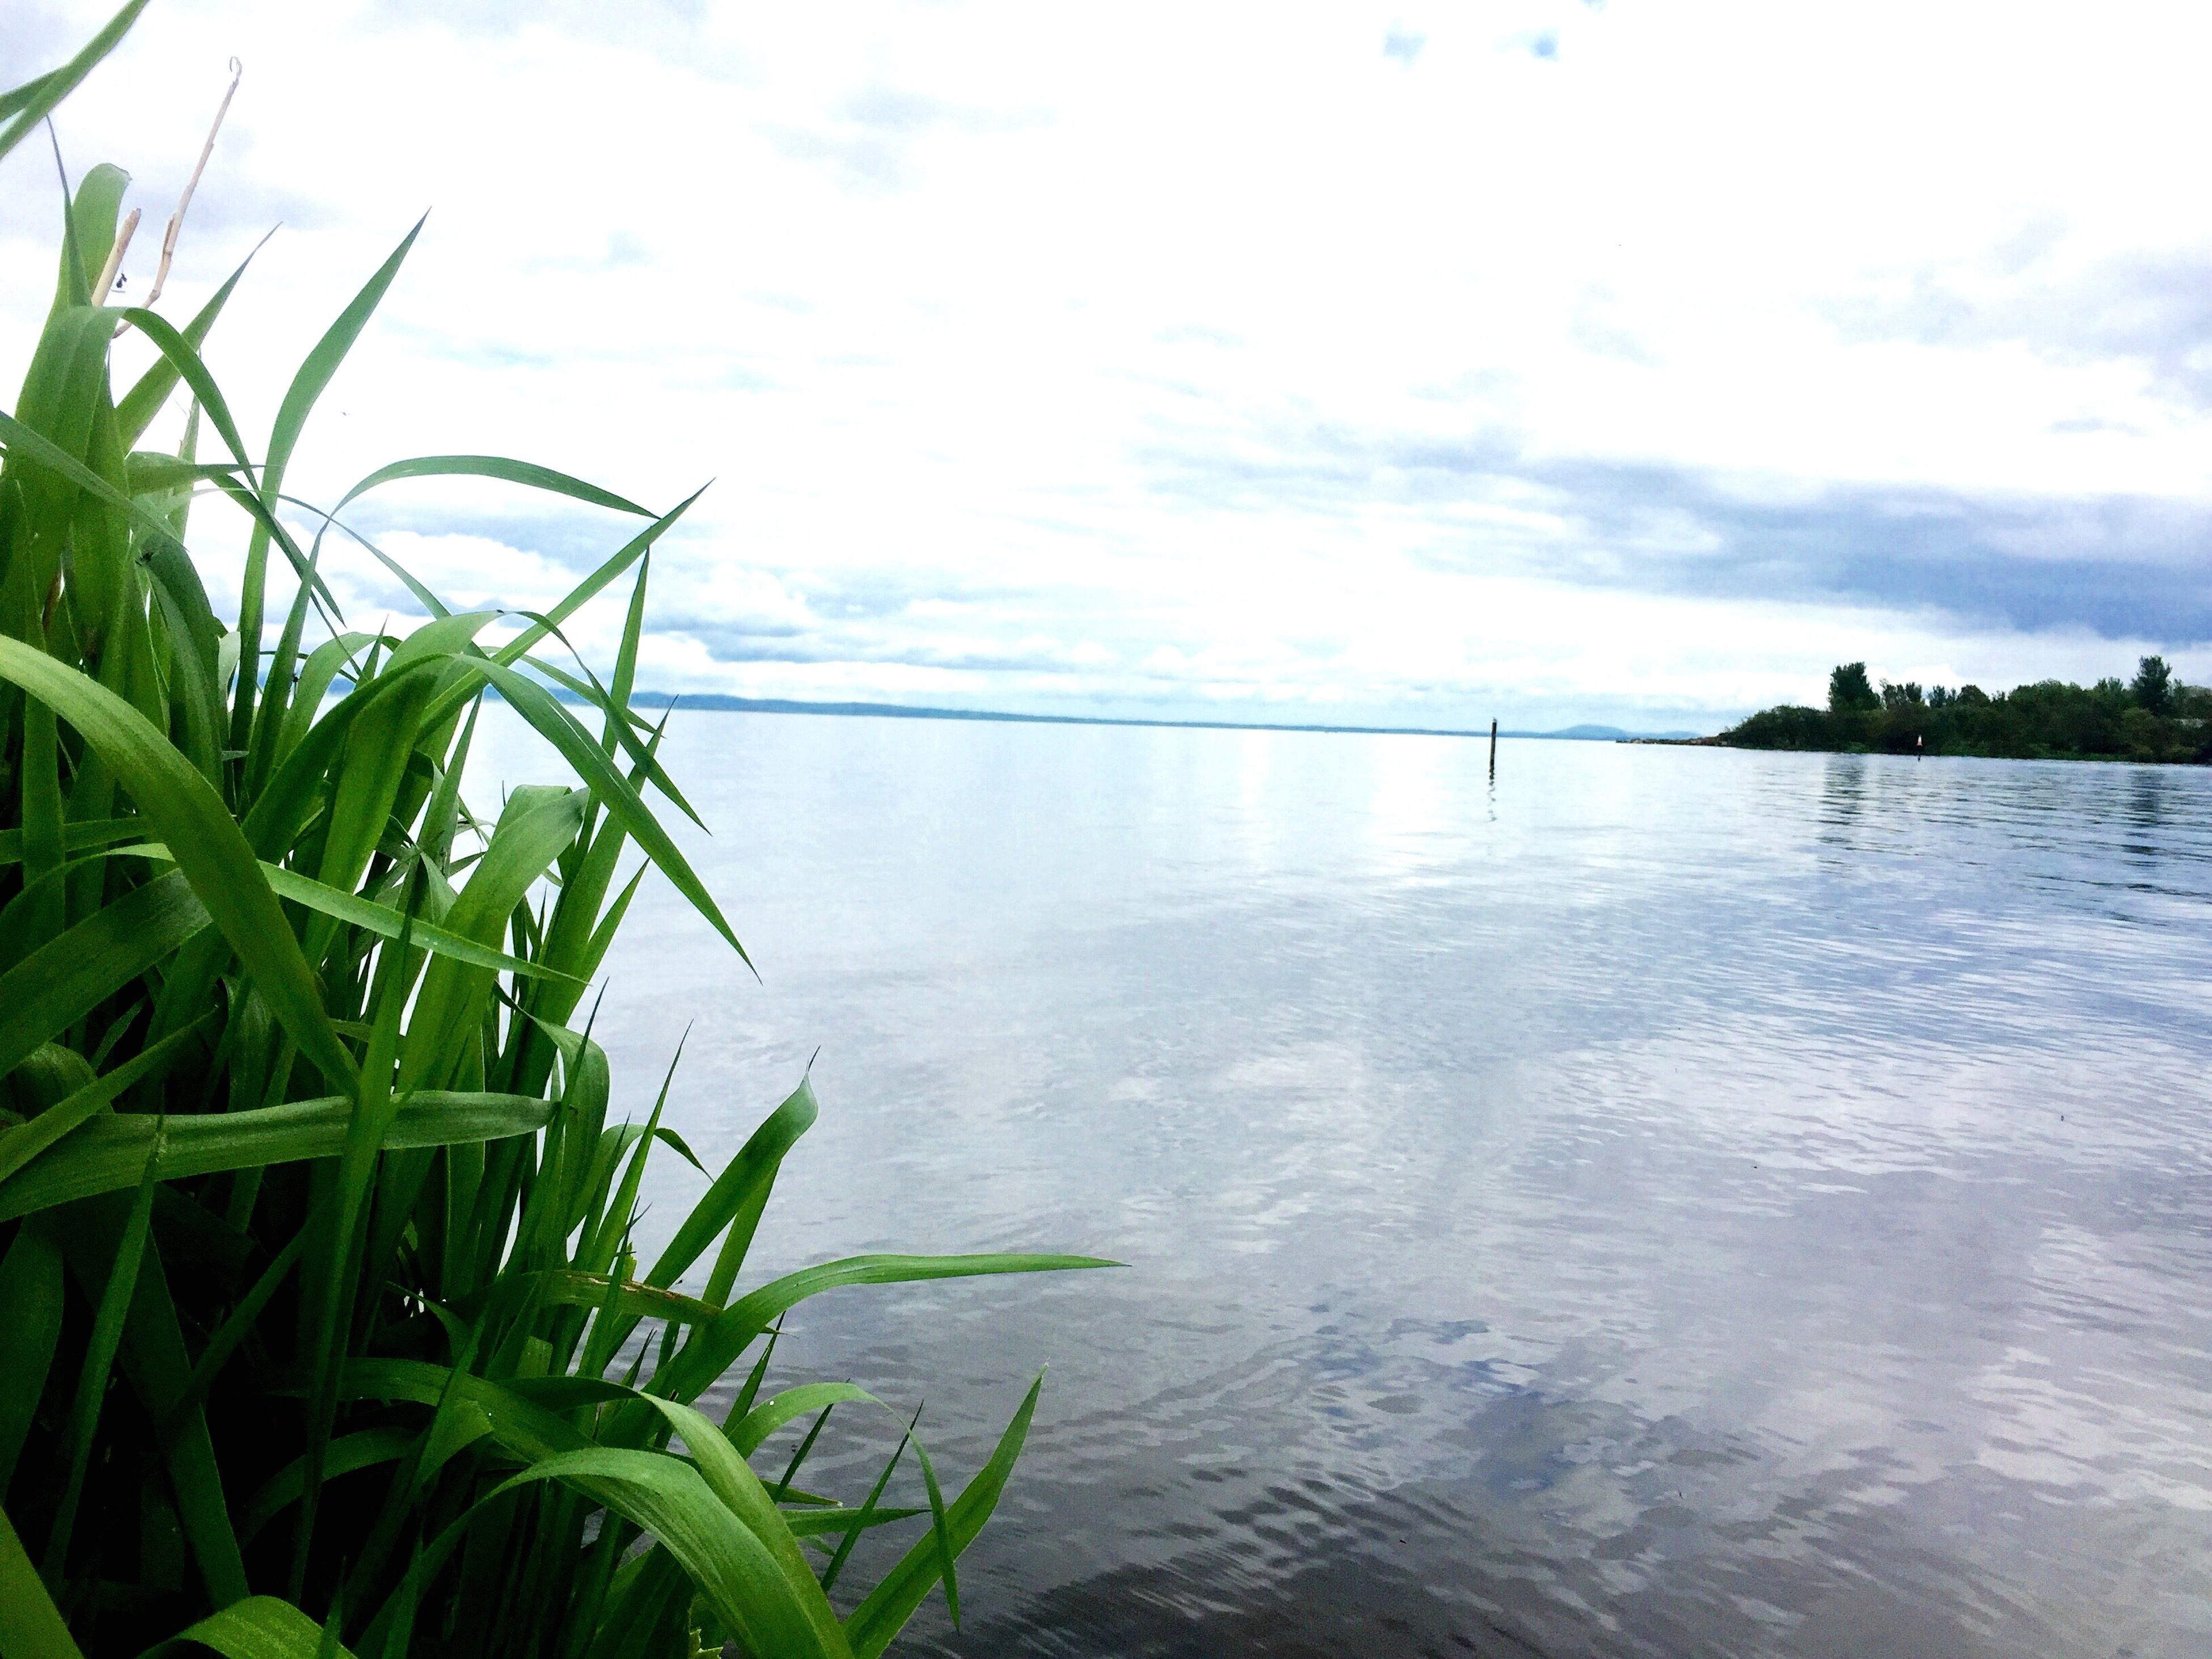 water, tranquility, sky, sea, tranquil scene, beauty in nature, nature, scenics, plant, growth, palm tree, horizon over water, leaf, beach, idyllic, lake, green color, cloud - sky, reflection, outdoors